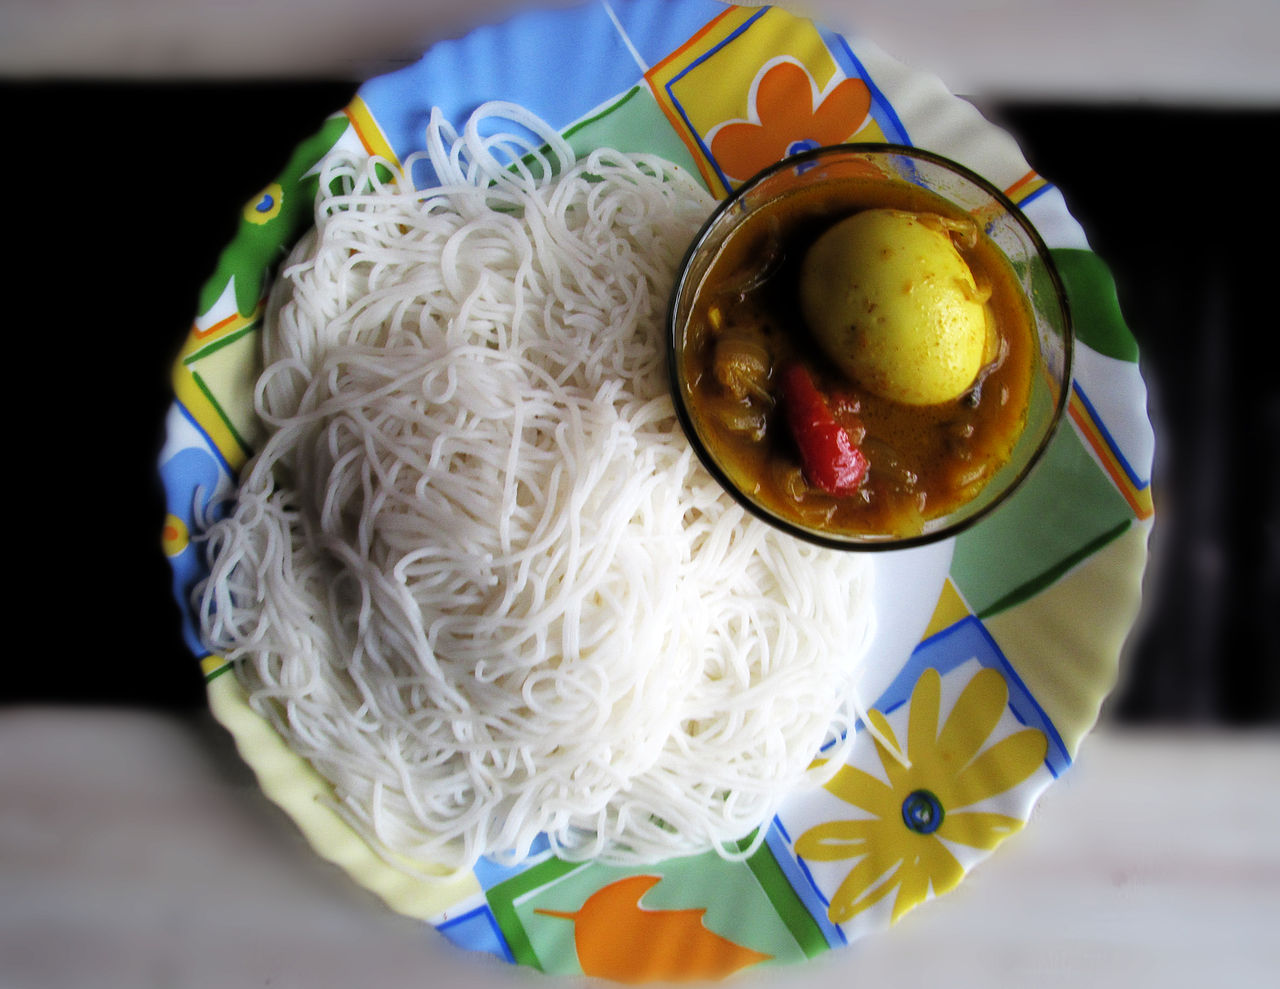 Best Foods and Dishes from Kerala-Idiyappam and Curry